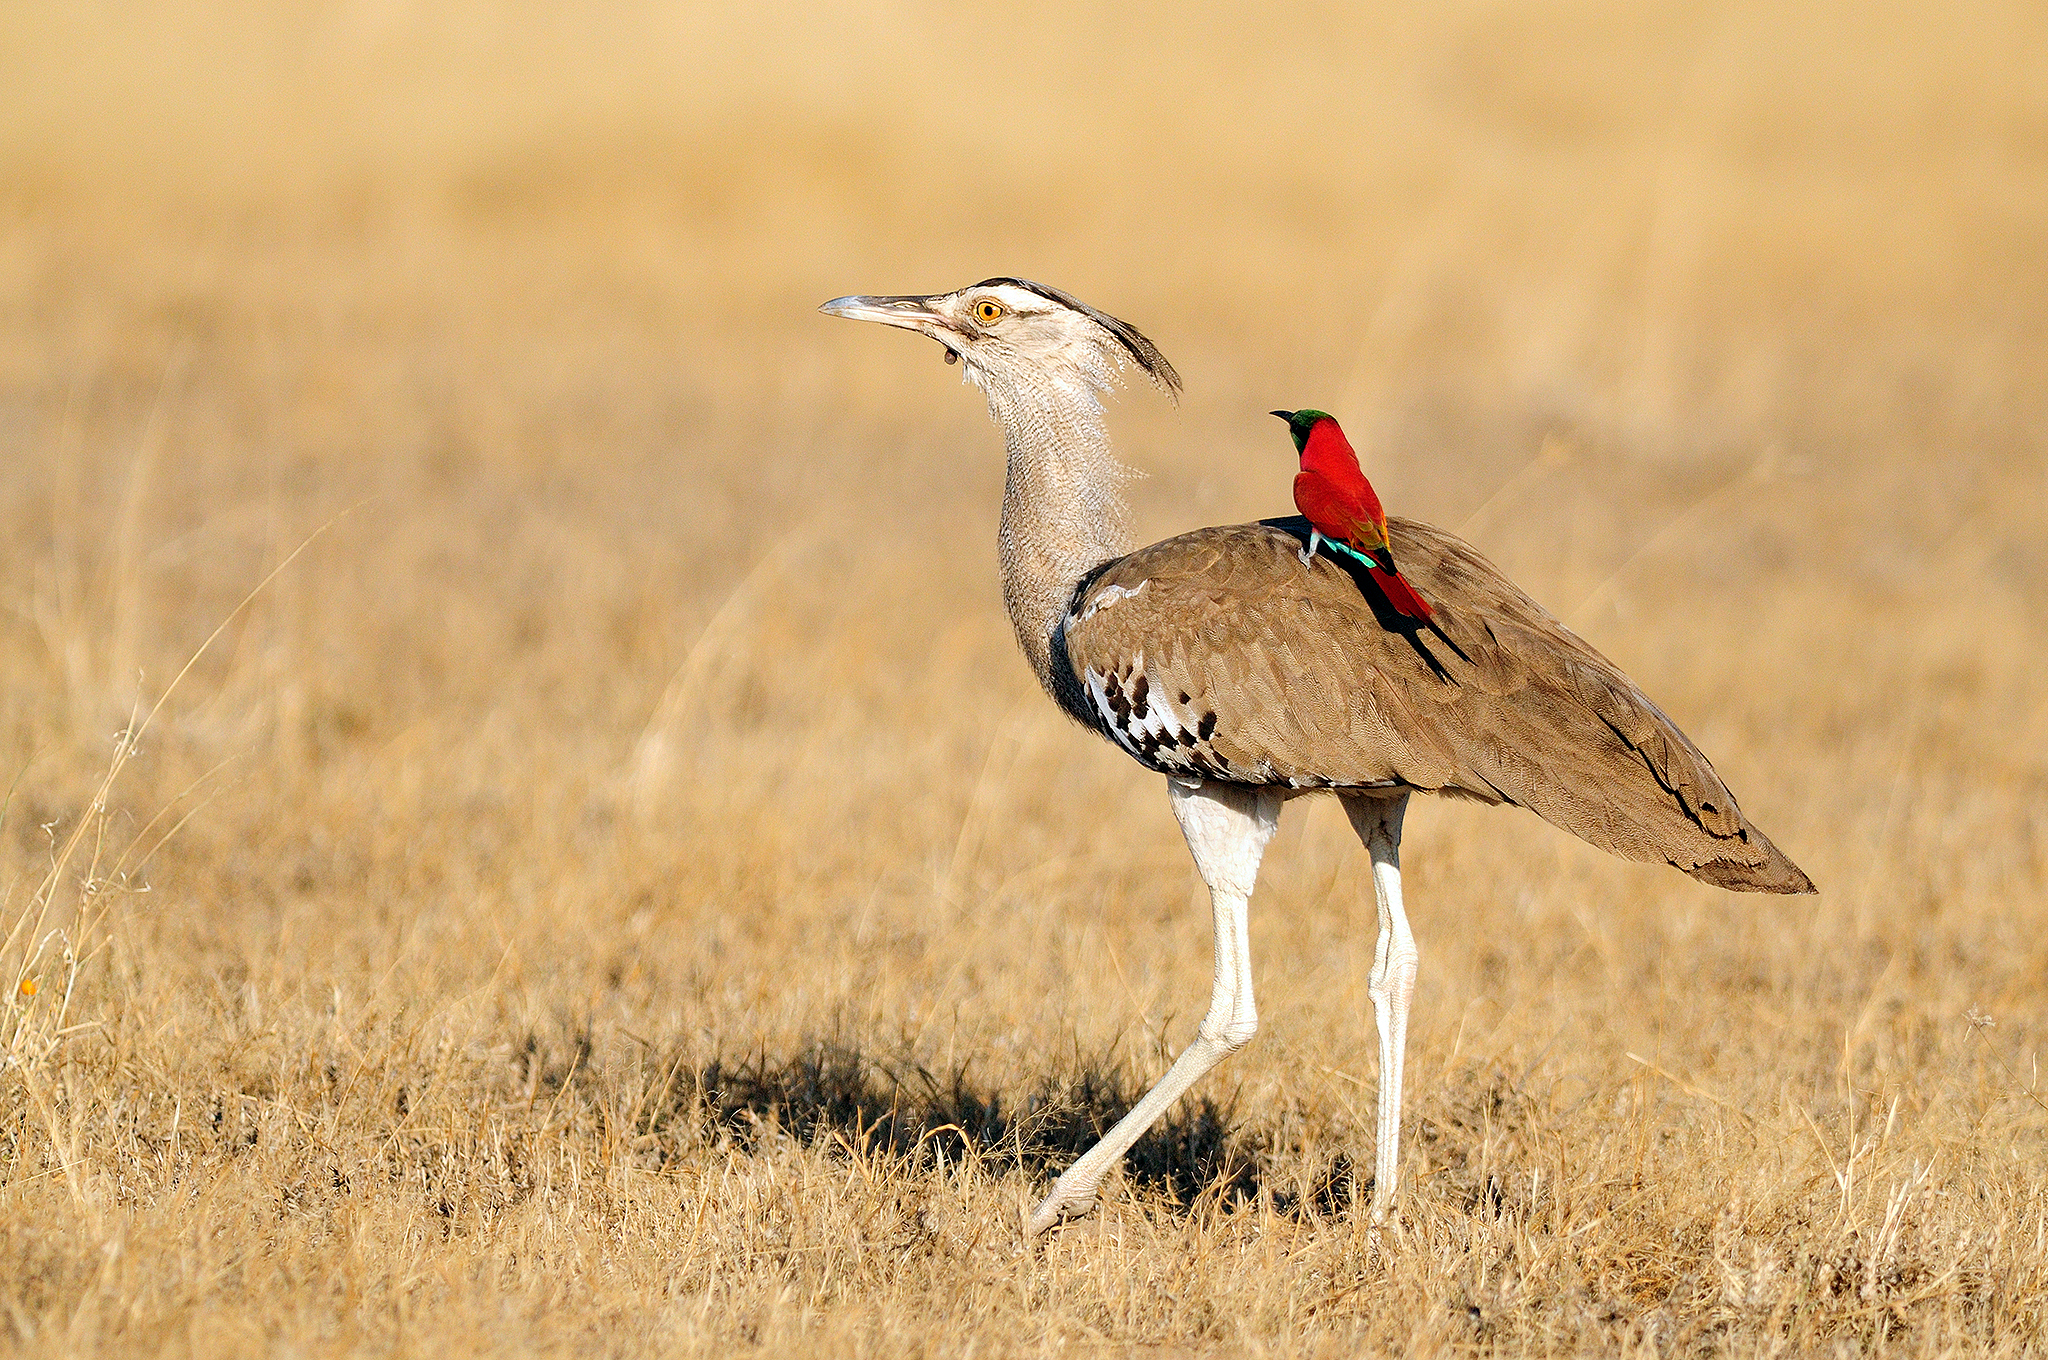 Kori Bustard and Northern Carmine Bee-ea